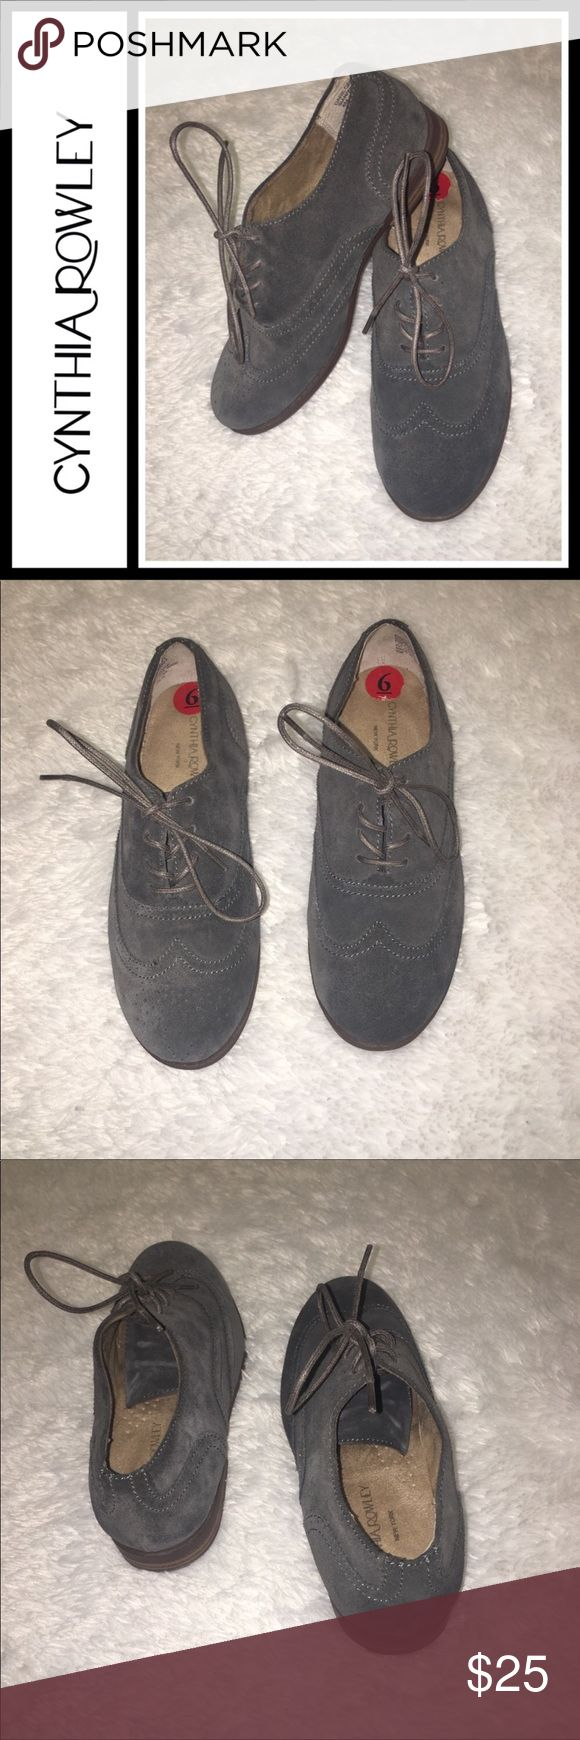 Cynthia Rowley Grey Suede Casual Oxford shoes NWOB Cynthia Rowley Grey Suede Casual Oxford shoes NWOB  New without box, leather suede grey oxford loafers from Cynthia Rowley. Size 6 Cynthia Rowley Shoes Flats & Loafers